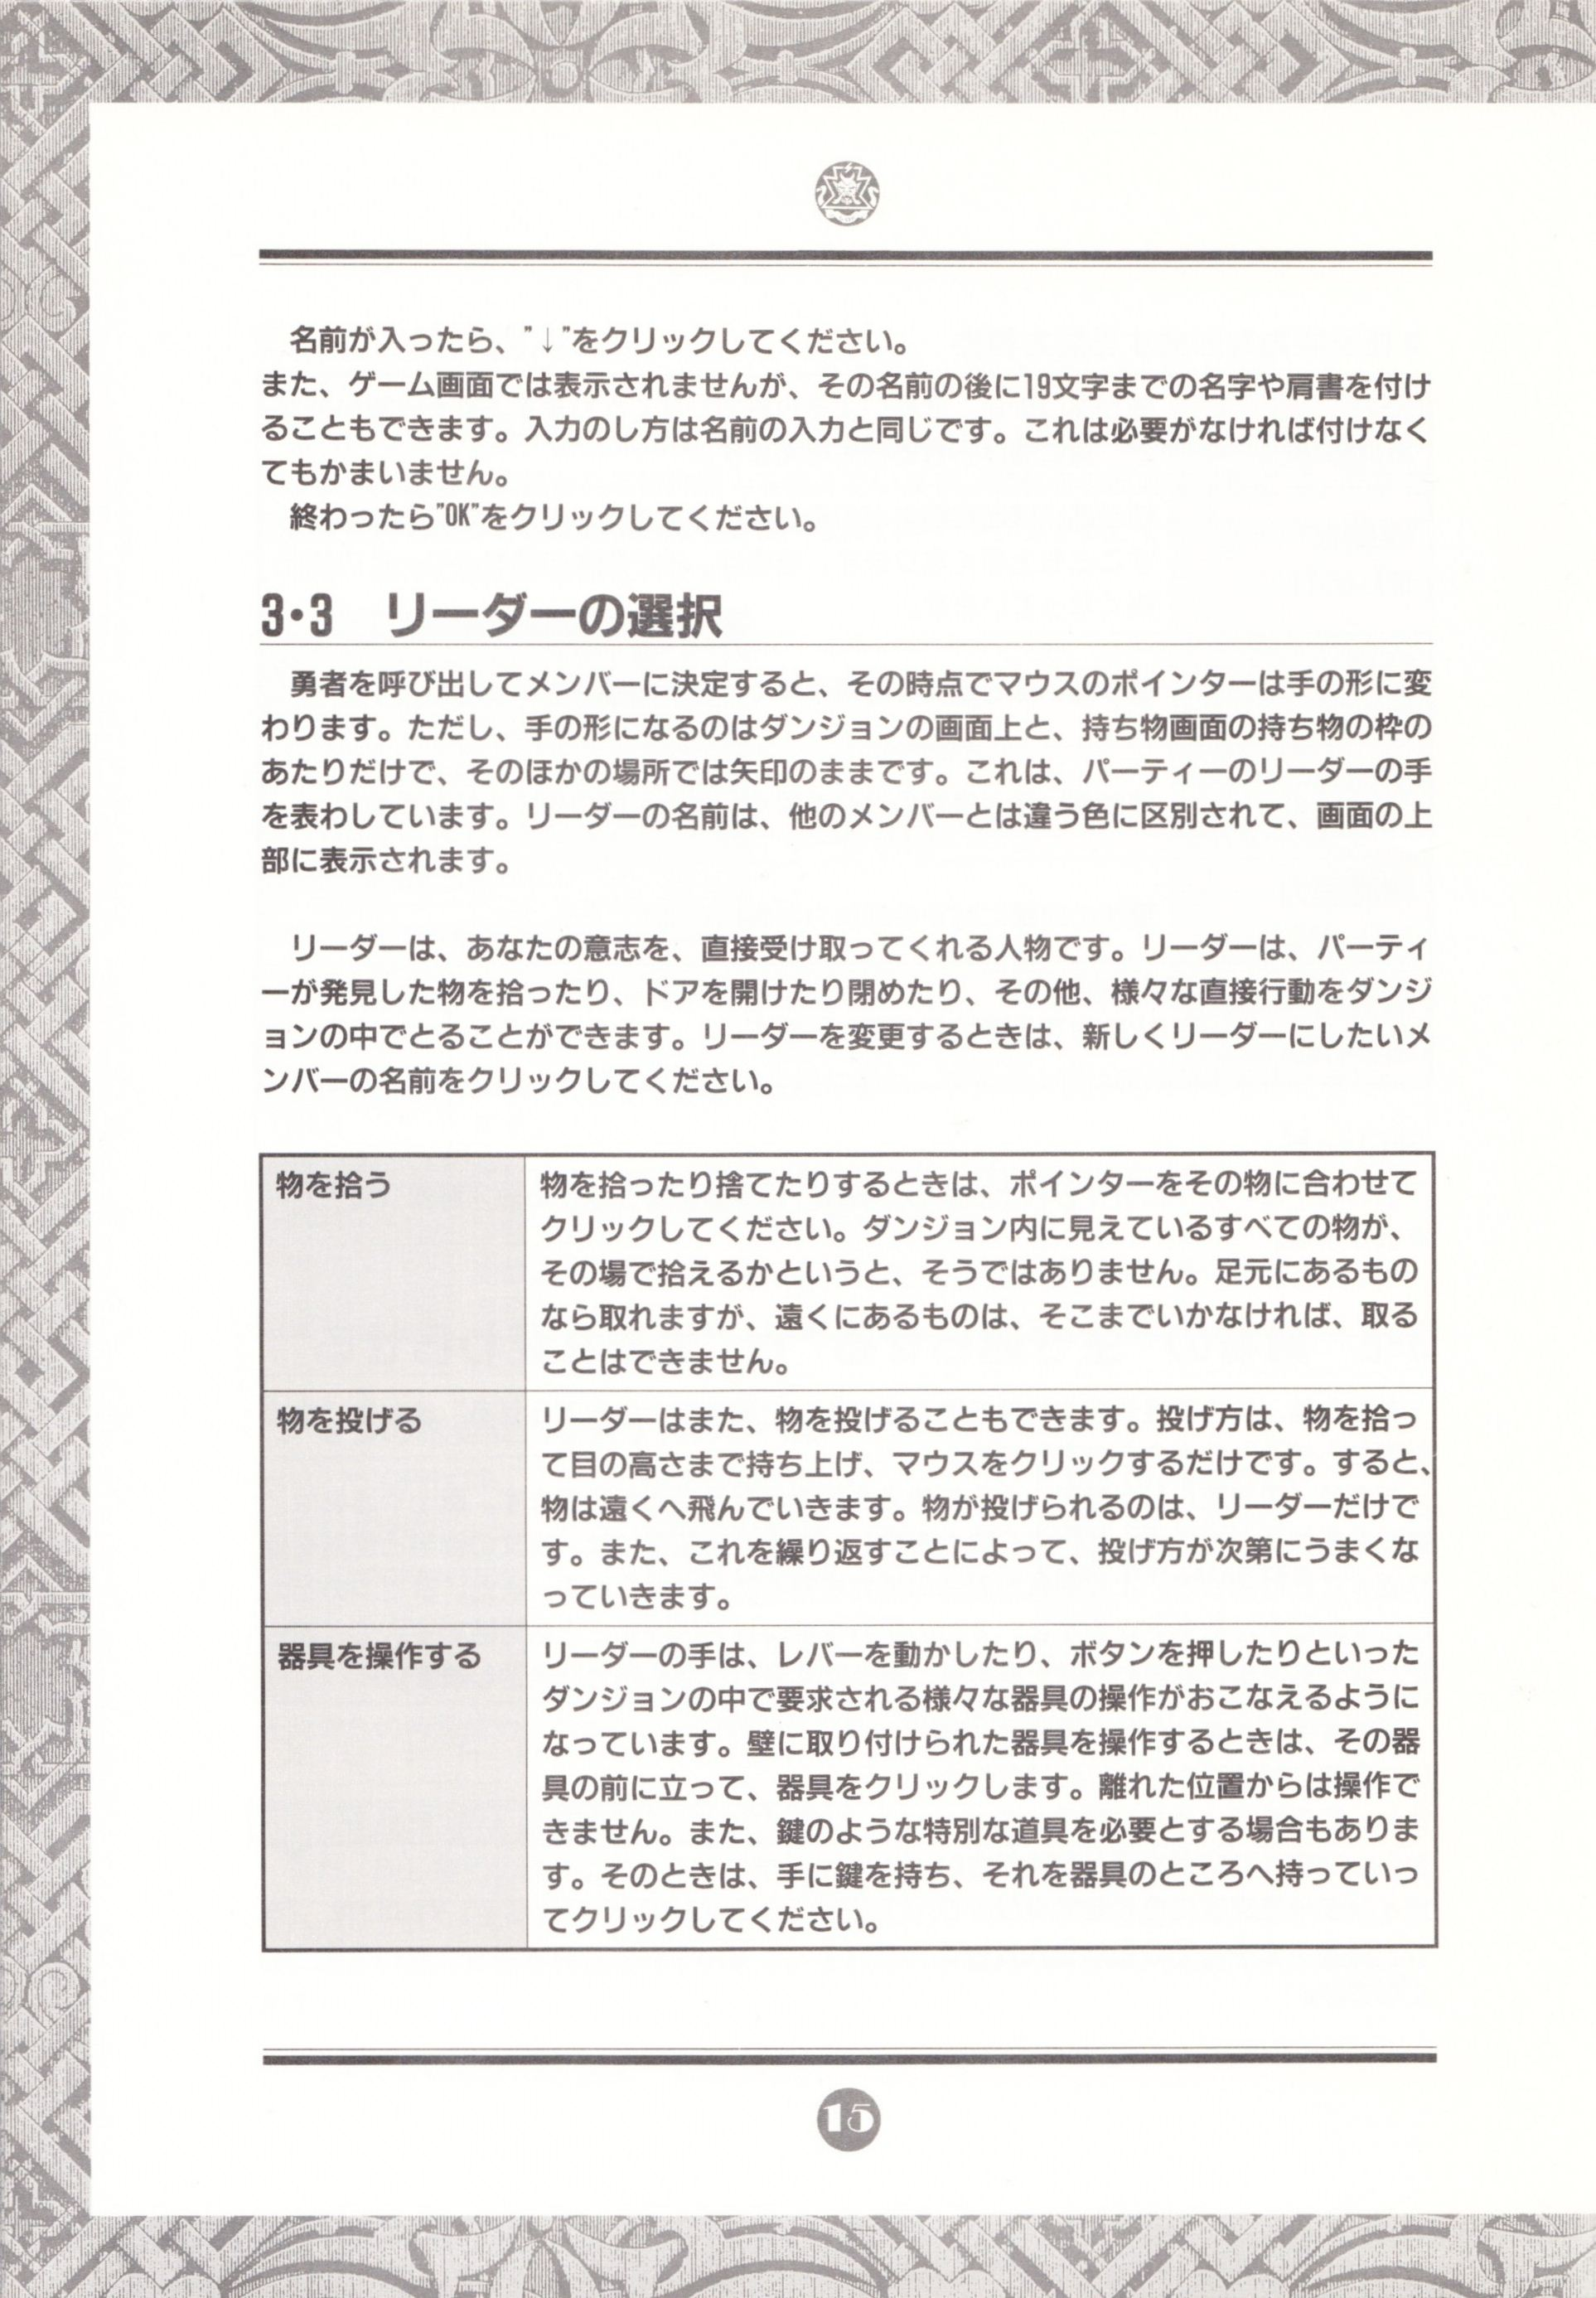 Game - Chaos Strikes Back - JP - FM Towns - An Operation Manual - Page 018 - Scan